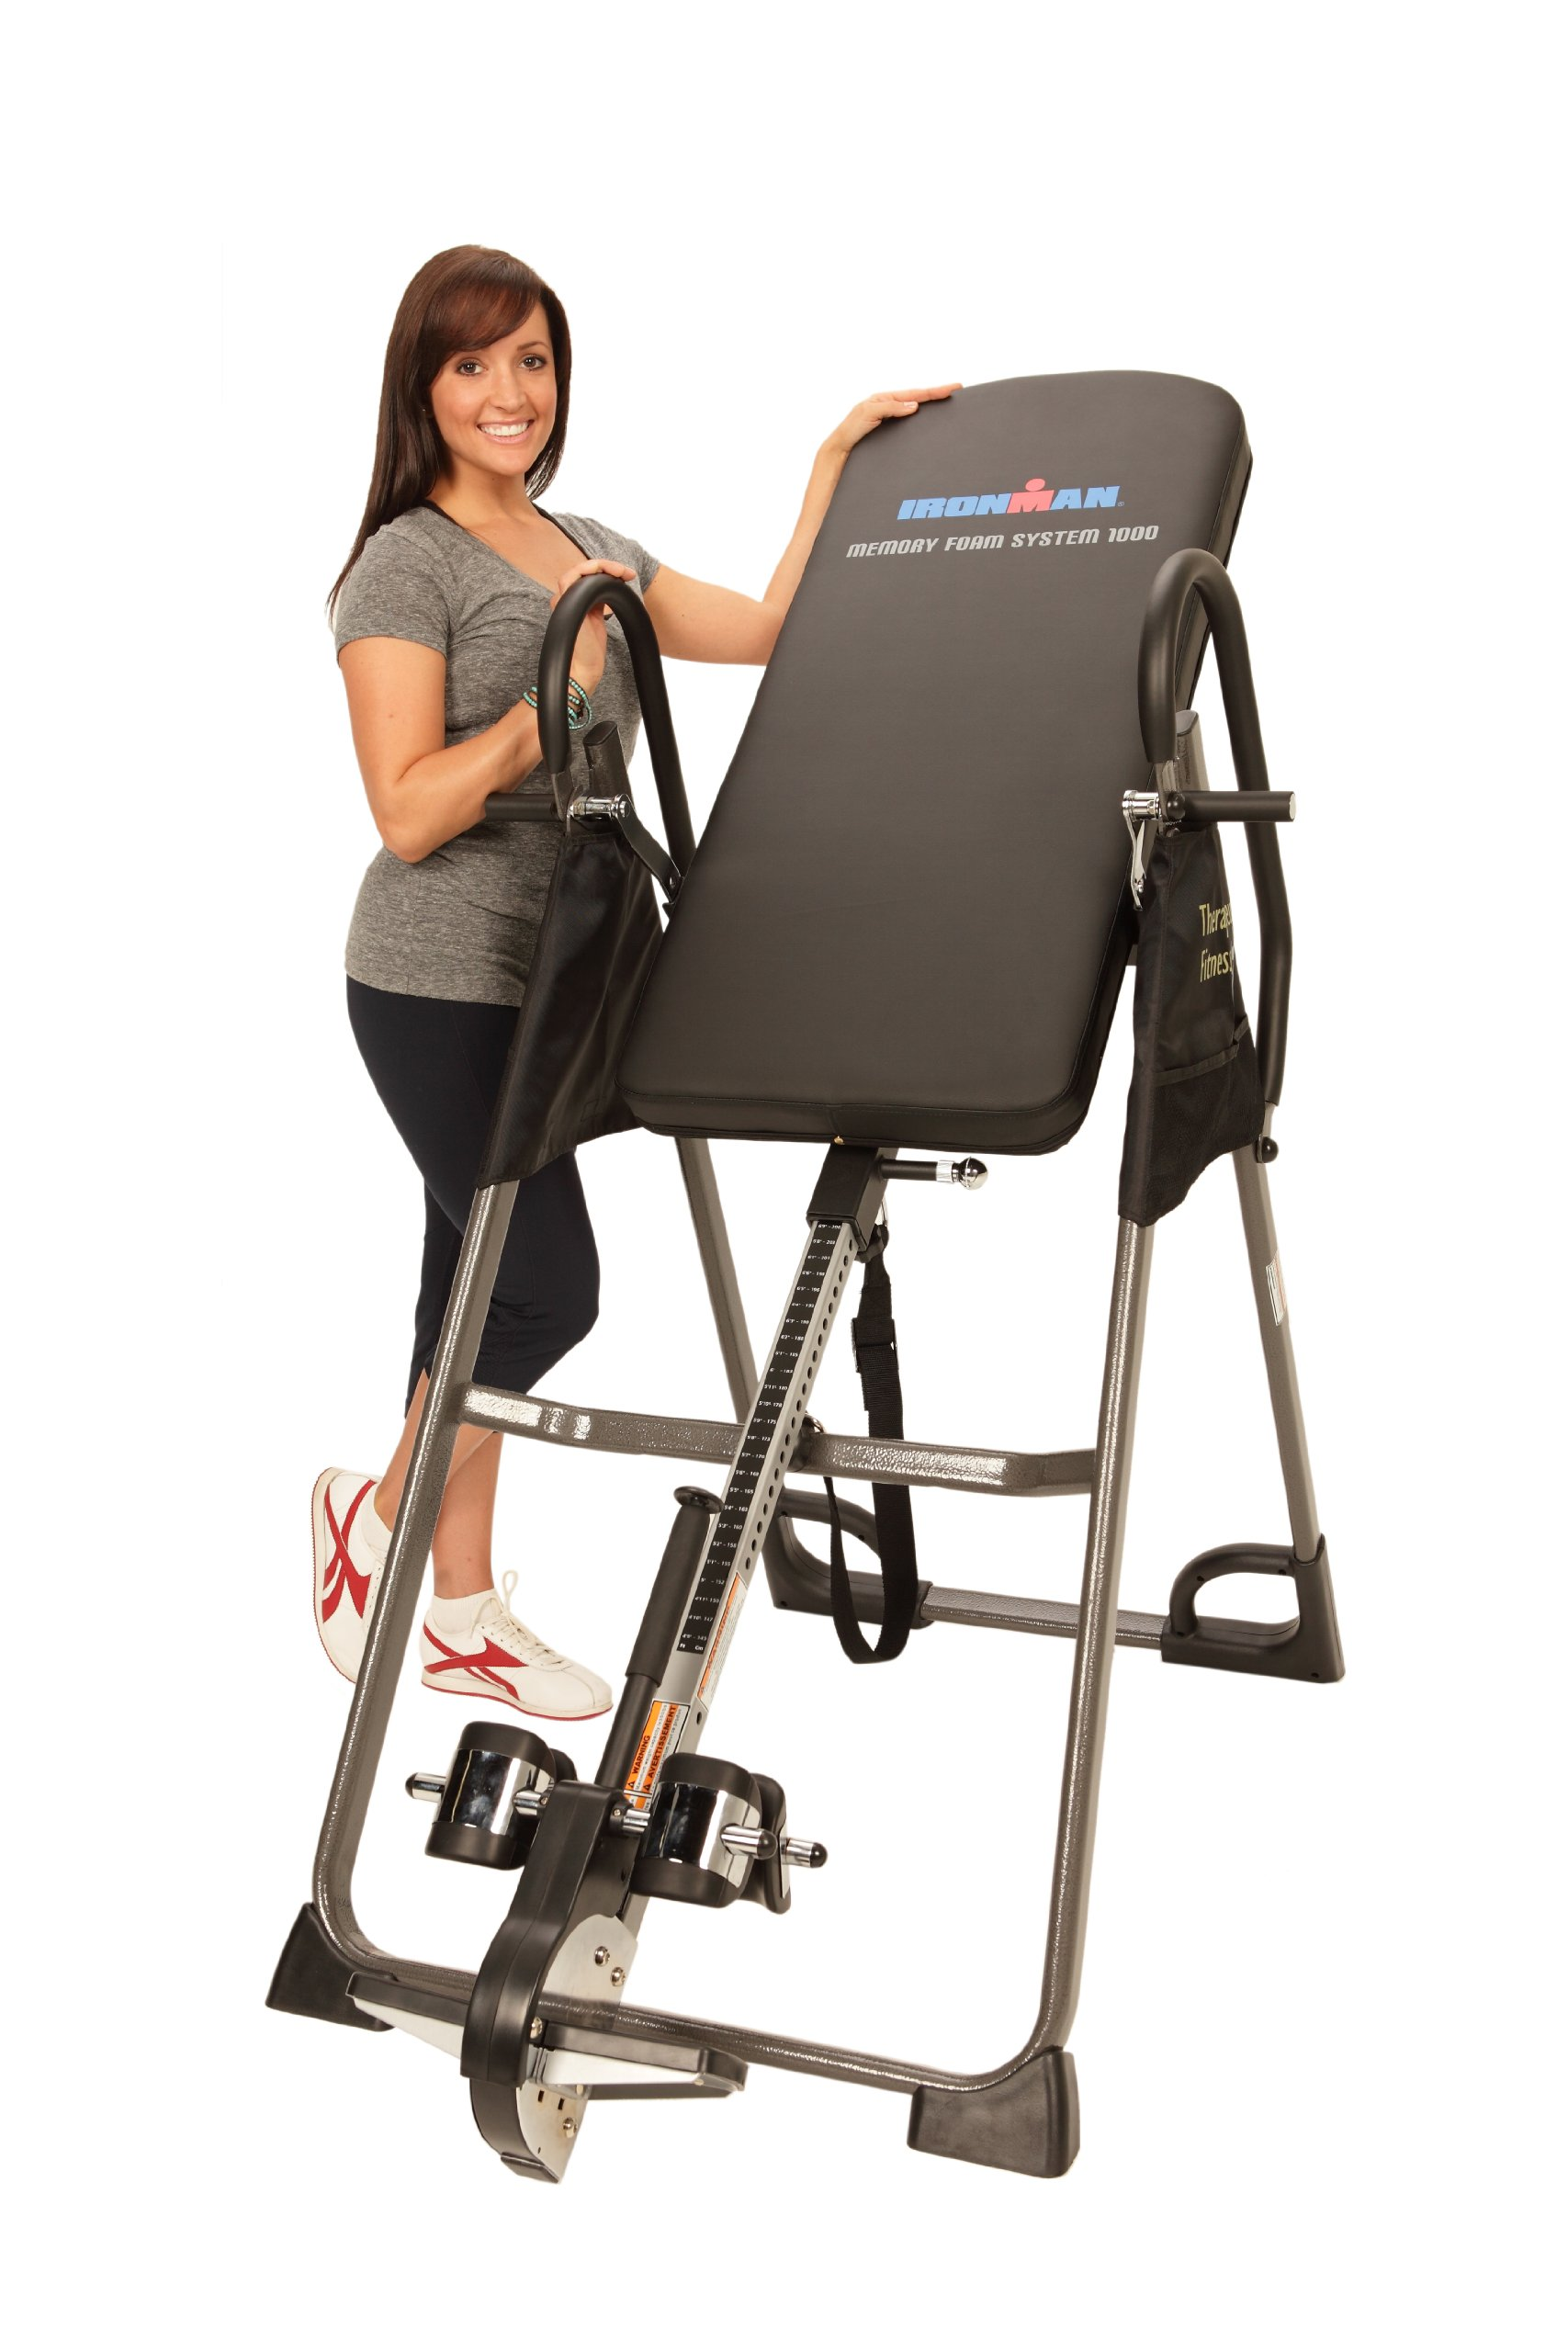 IRONMAN High Capacity Gravity 3000 Inversion Table, 350 lbs by IRONMAN